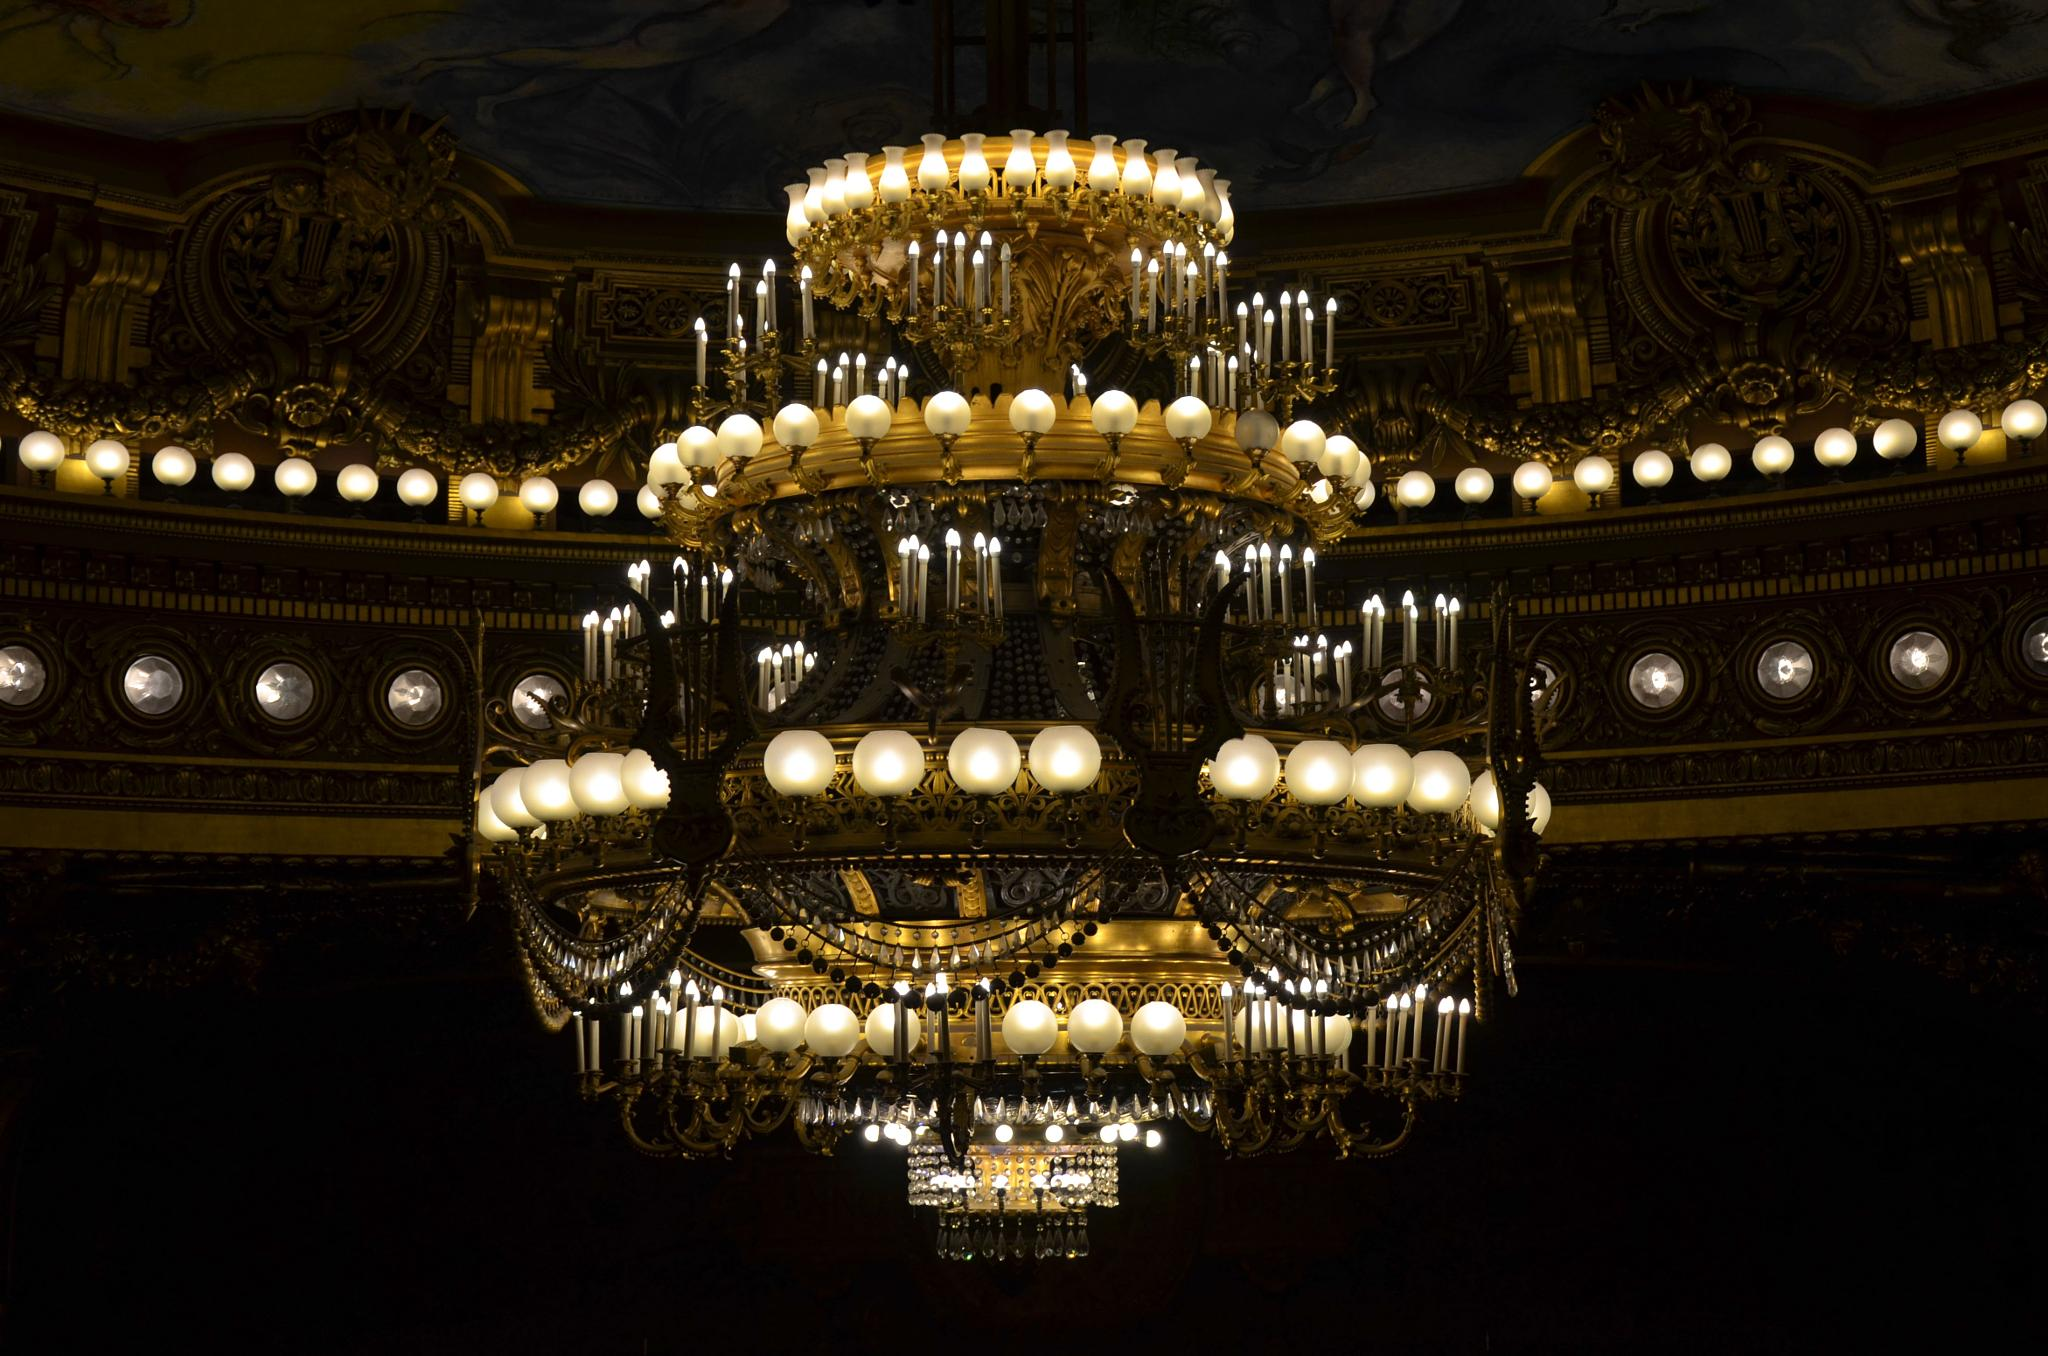 Opera Garnier - Let There Be Light by Manuel Atréide